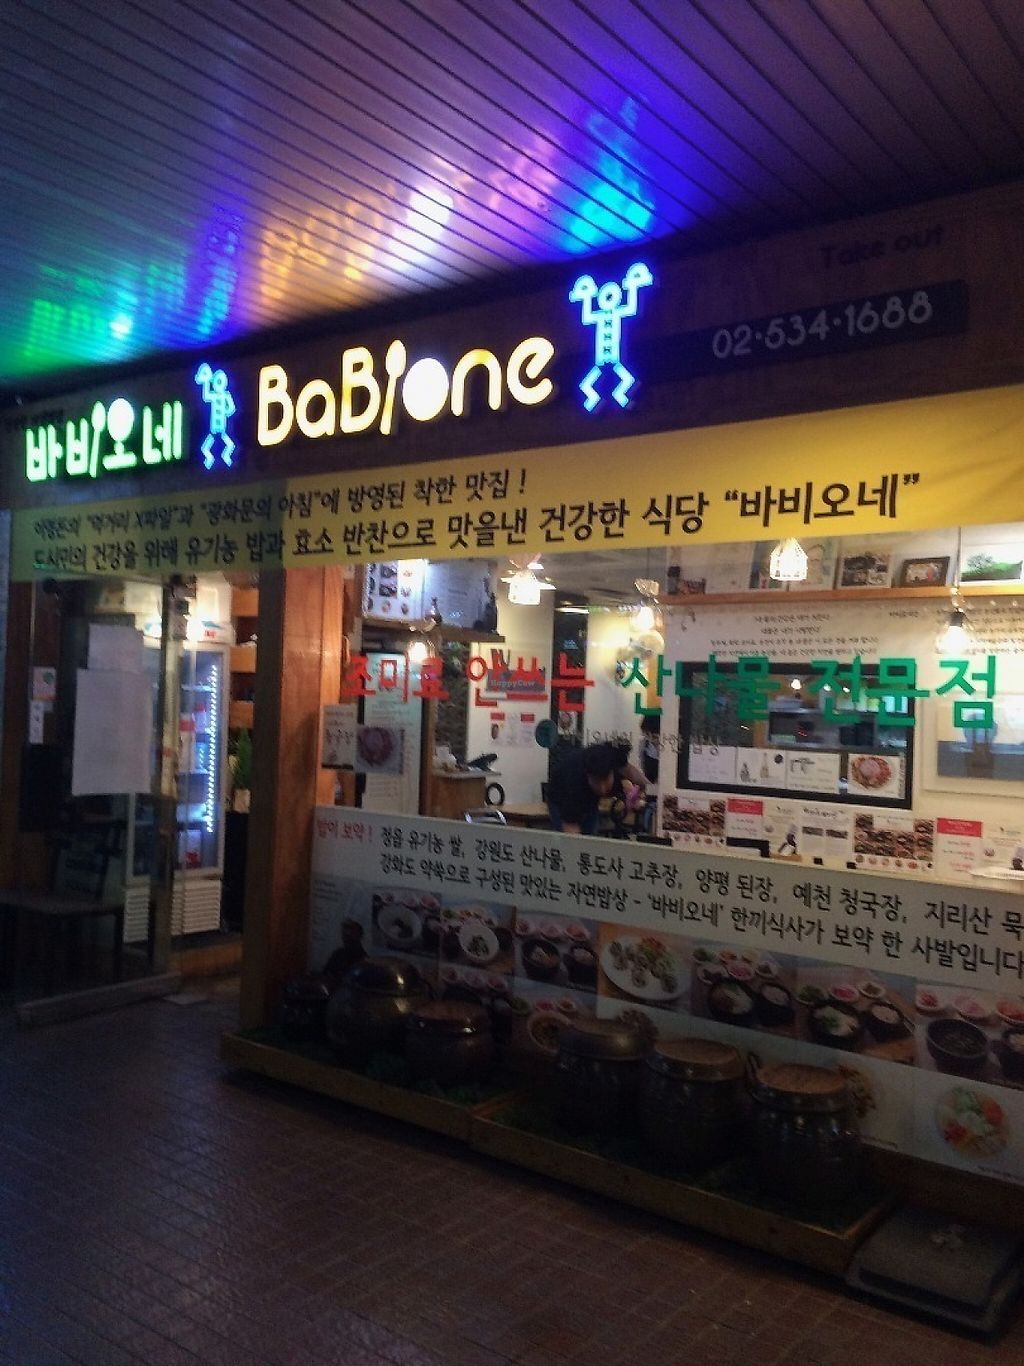 """Photo of CLOSED: Babione - 바비오네  by <a href=""""/members/profile/dwaejieolgul"""">dwaejieolgul</a> <br/>Store front at the Express Bus Terminal <br/> May 27, 2017  - <a href='/contact/abuse/image/50225/262982'>Report</a>"""